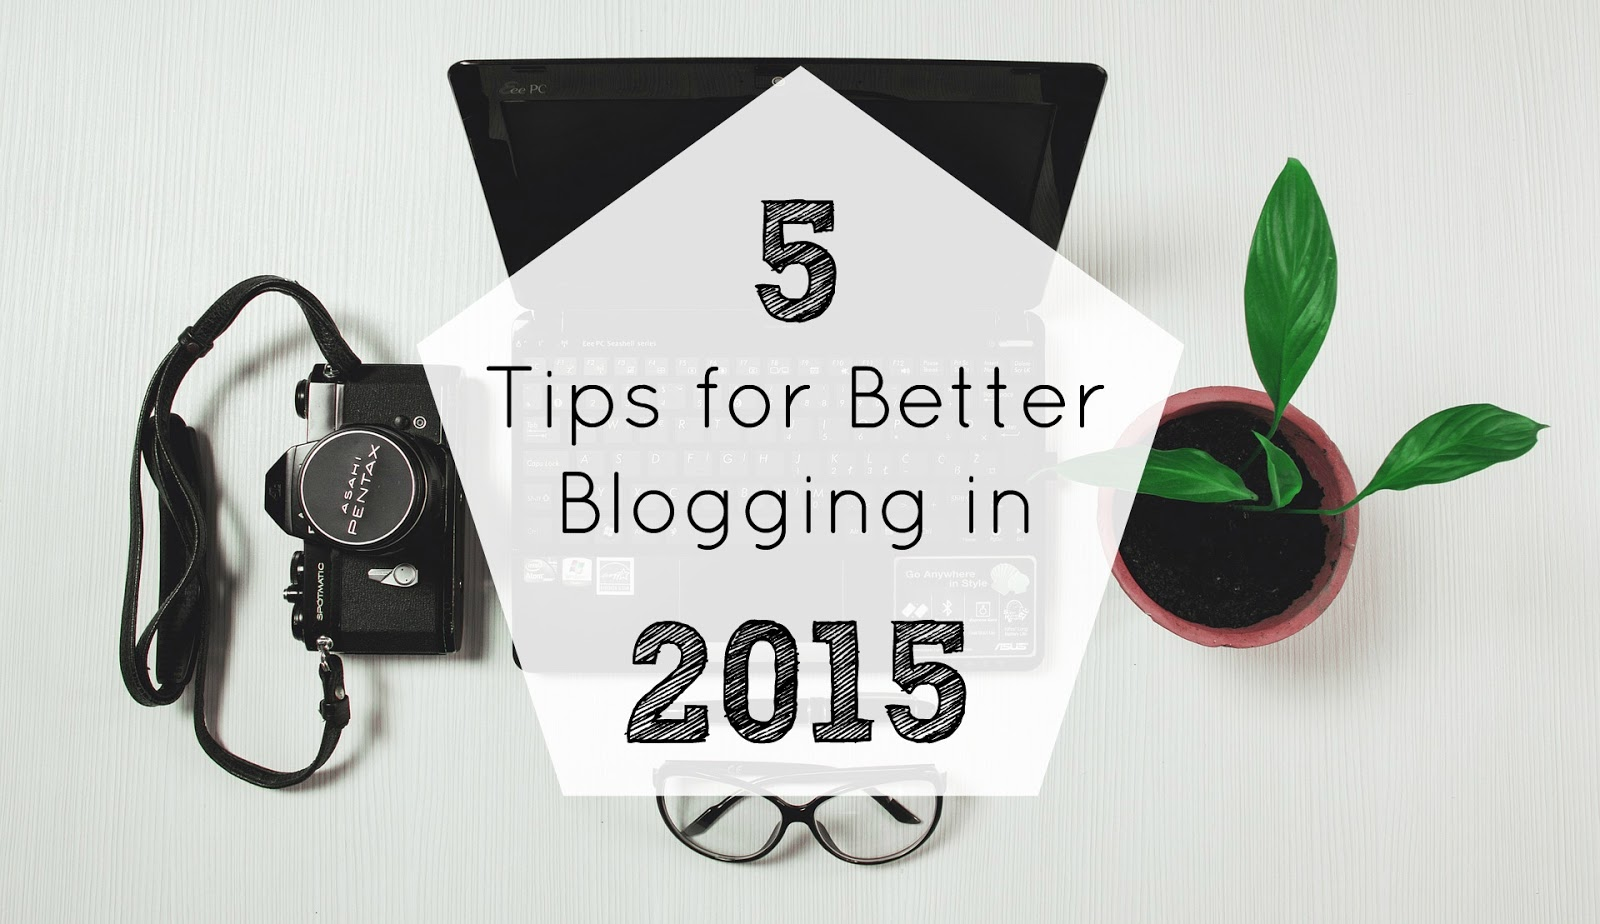 5 tips for better blogging 2015